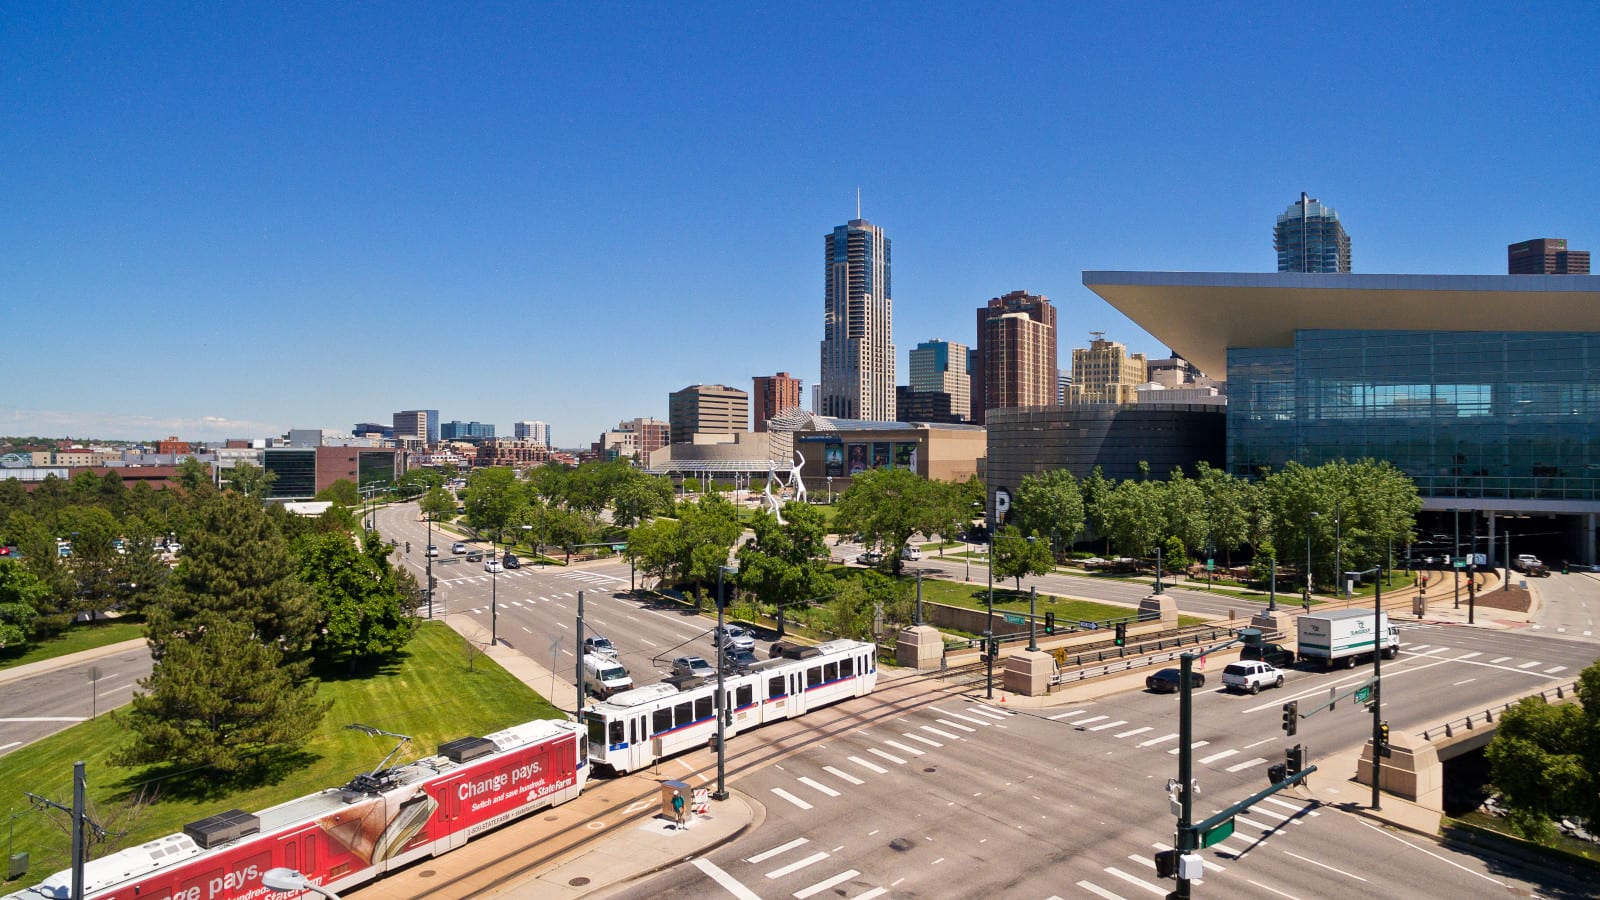 RTD Train Downtown Denver Colorado Aerial View